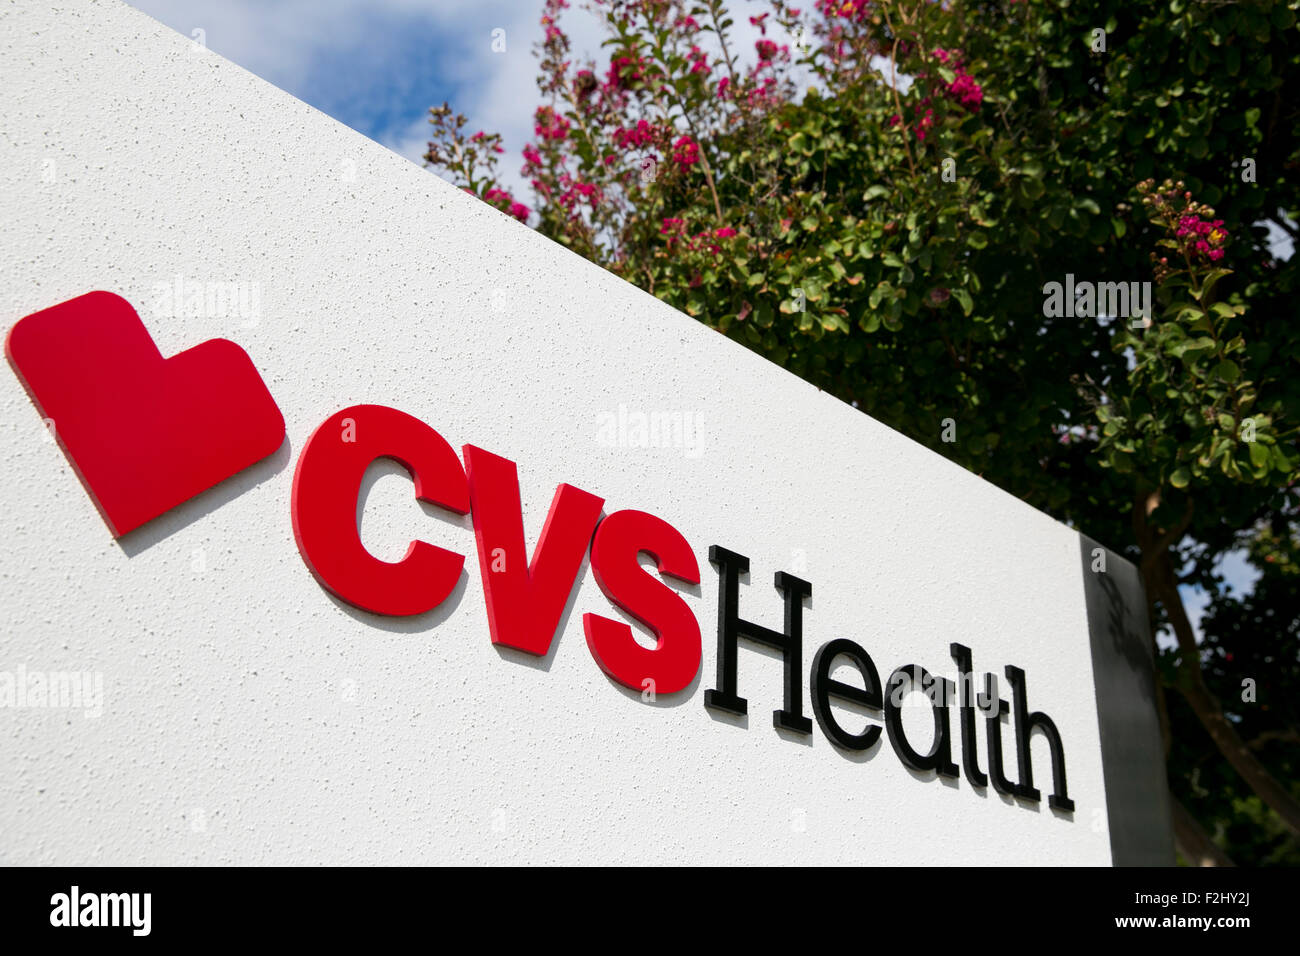 Cvs Health Stock Photos & Cvs Health Stock Images - Alamy